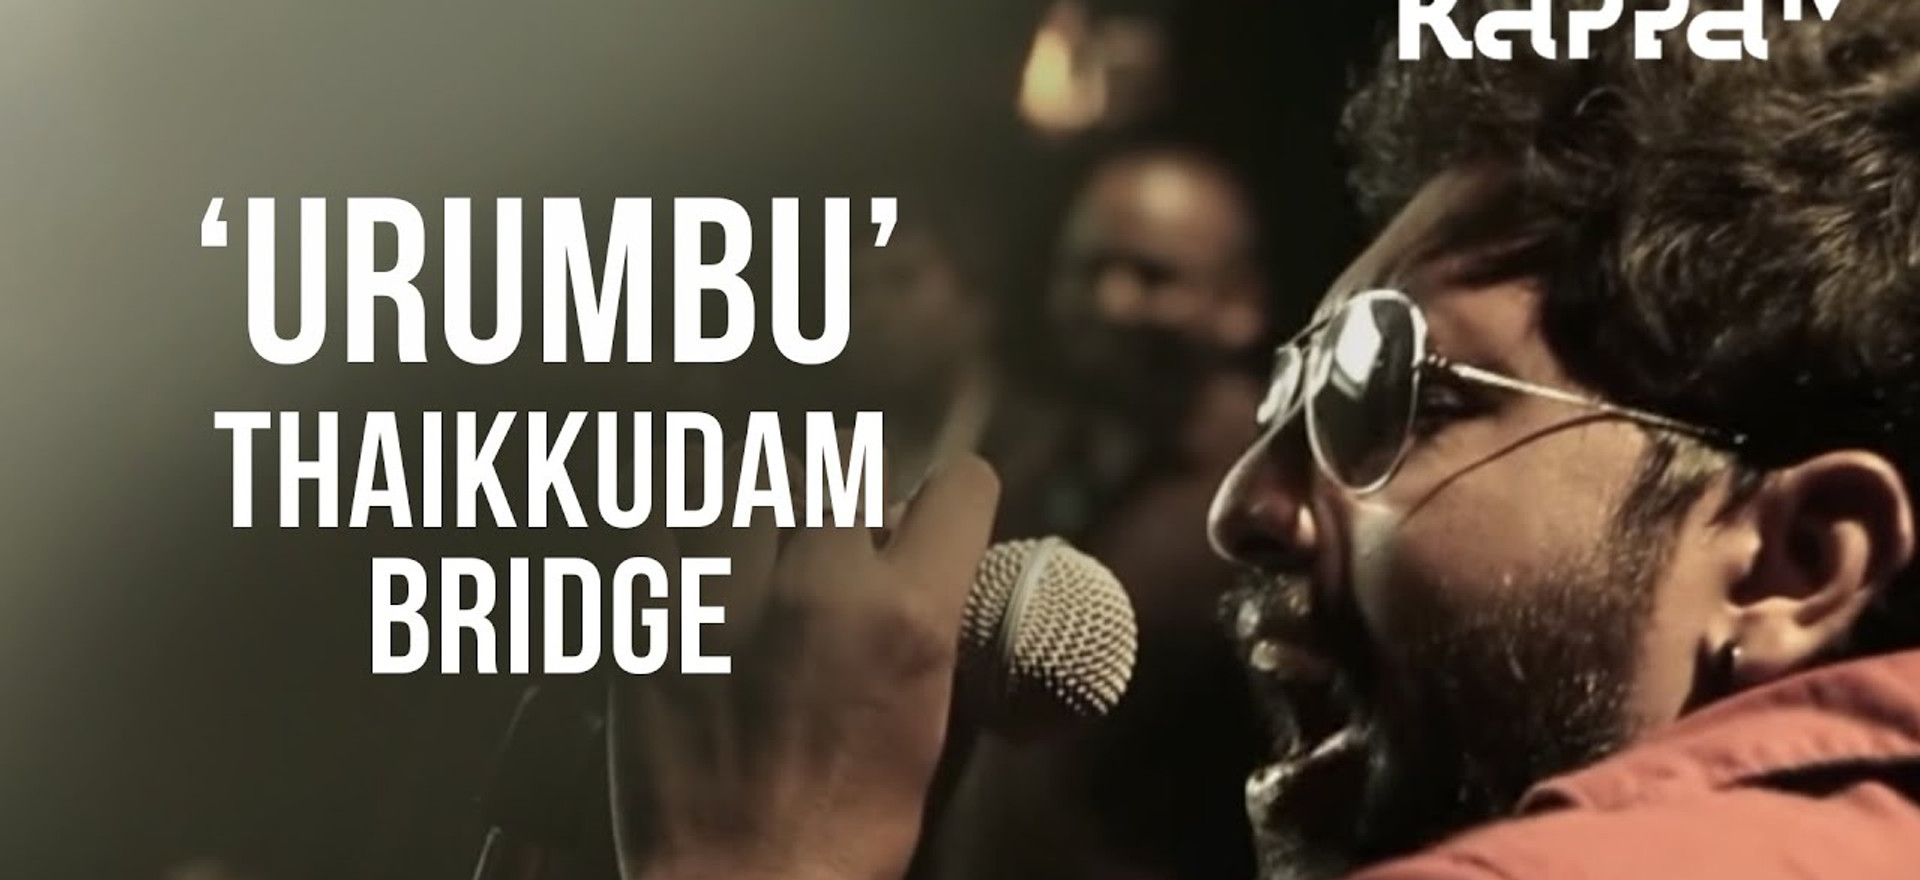 Urumbu | Navarasam - Thaikkudam Bridge - Live Sessions